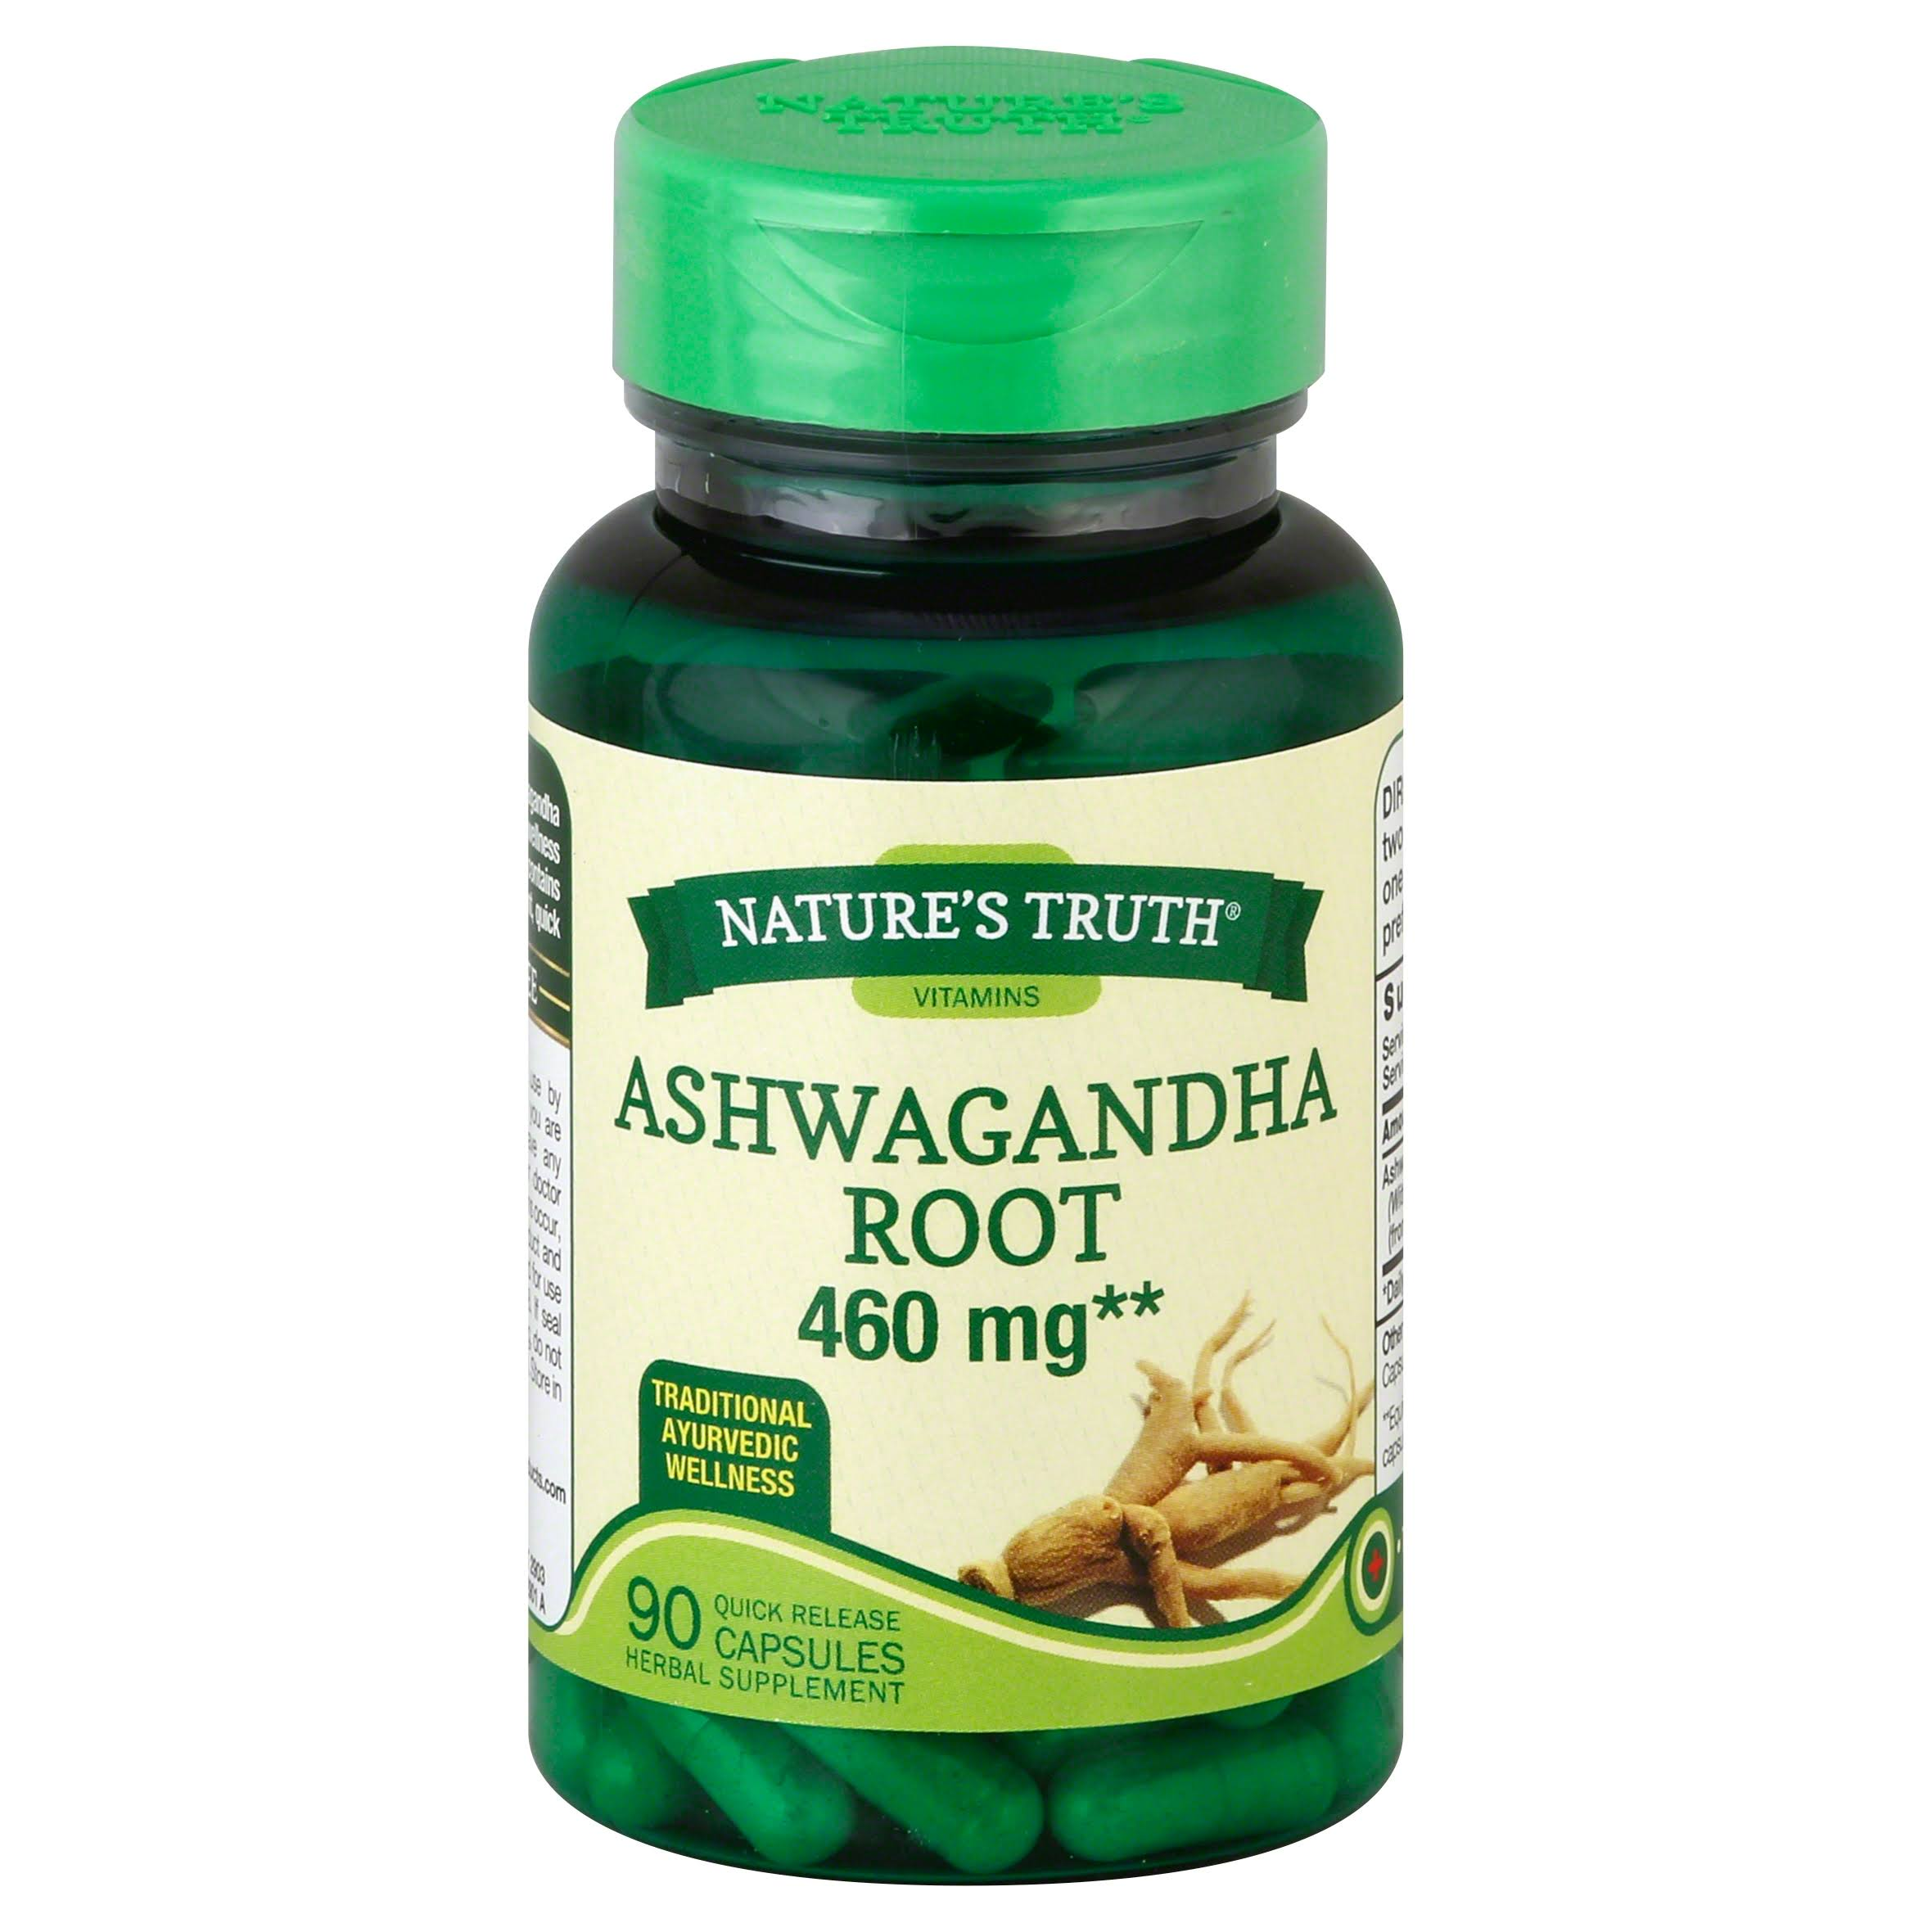 Natures Truth Ashwagandha Root, 460 mg, Quick Release Capsules - 90 capsules